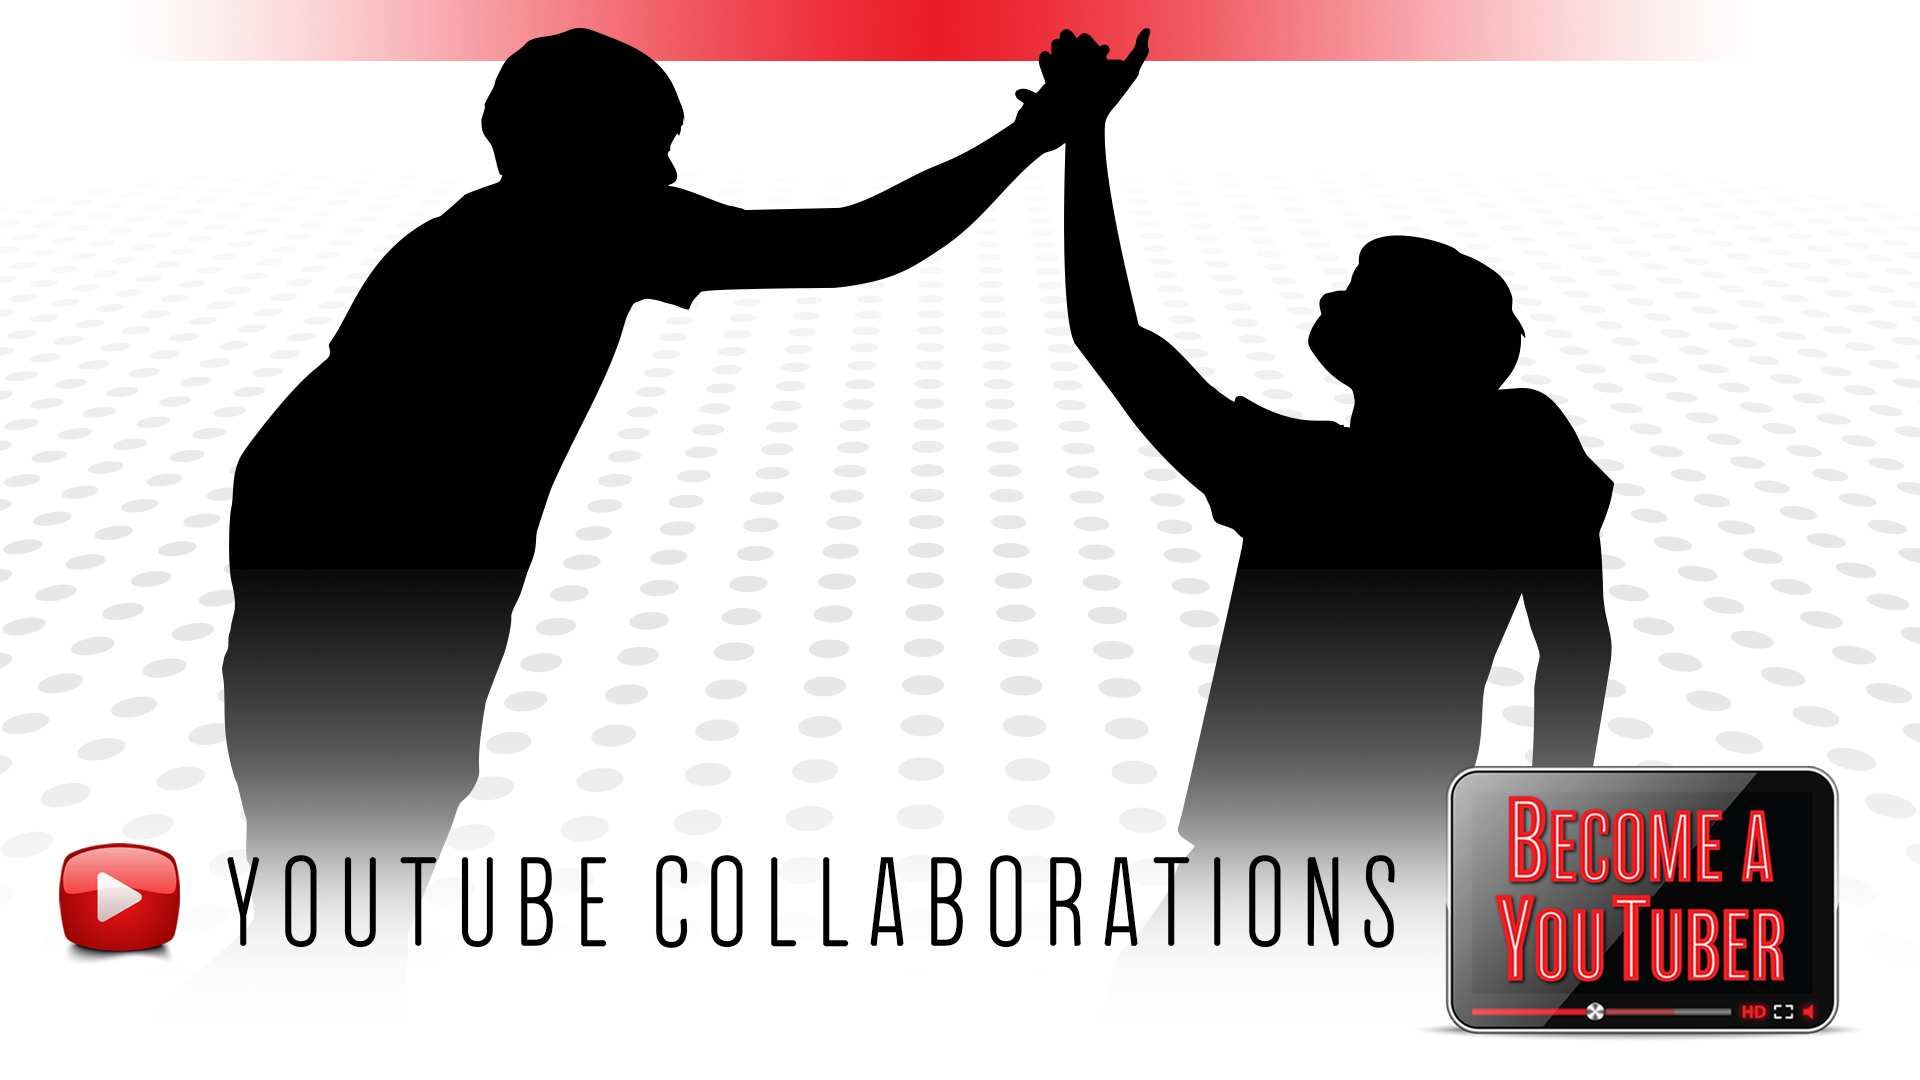 YouTube Collaborations